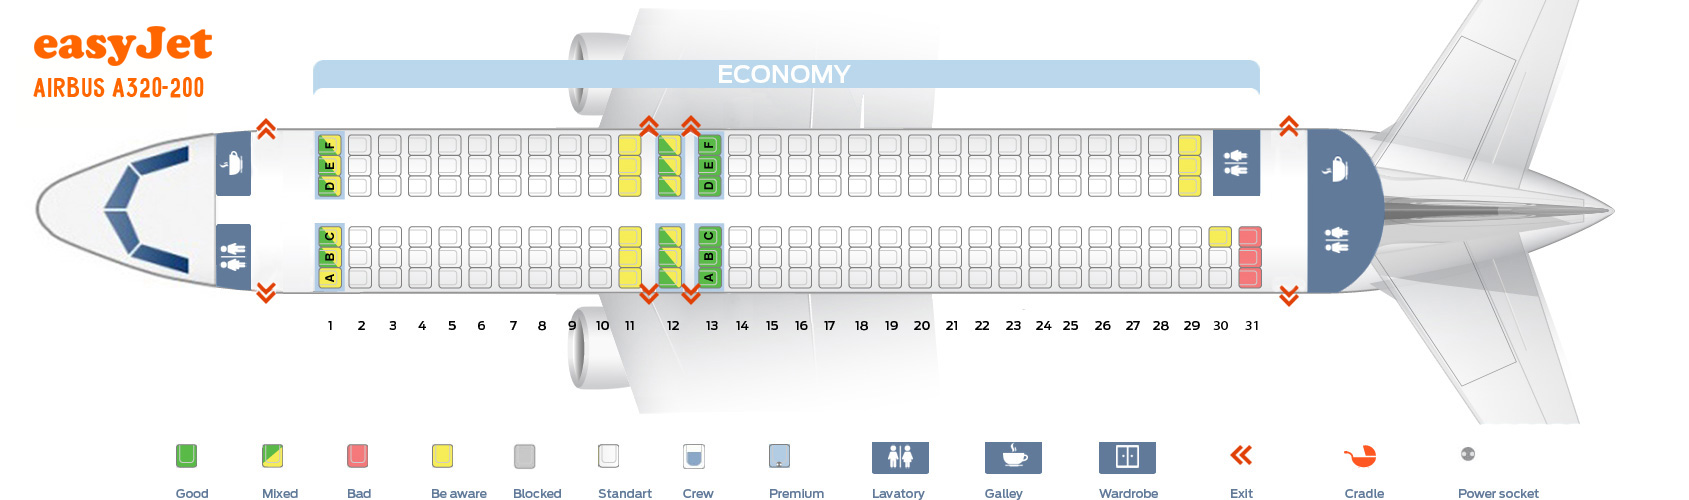 Easyjet Seat Map Seat map Airbus A320 Easyjet. Best seats in the plane Easyjet Seat Map